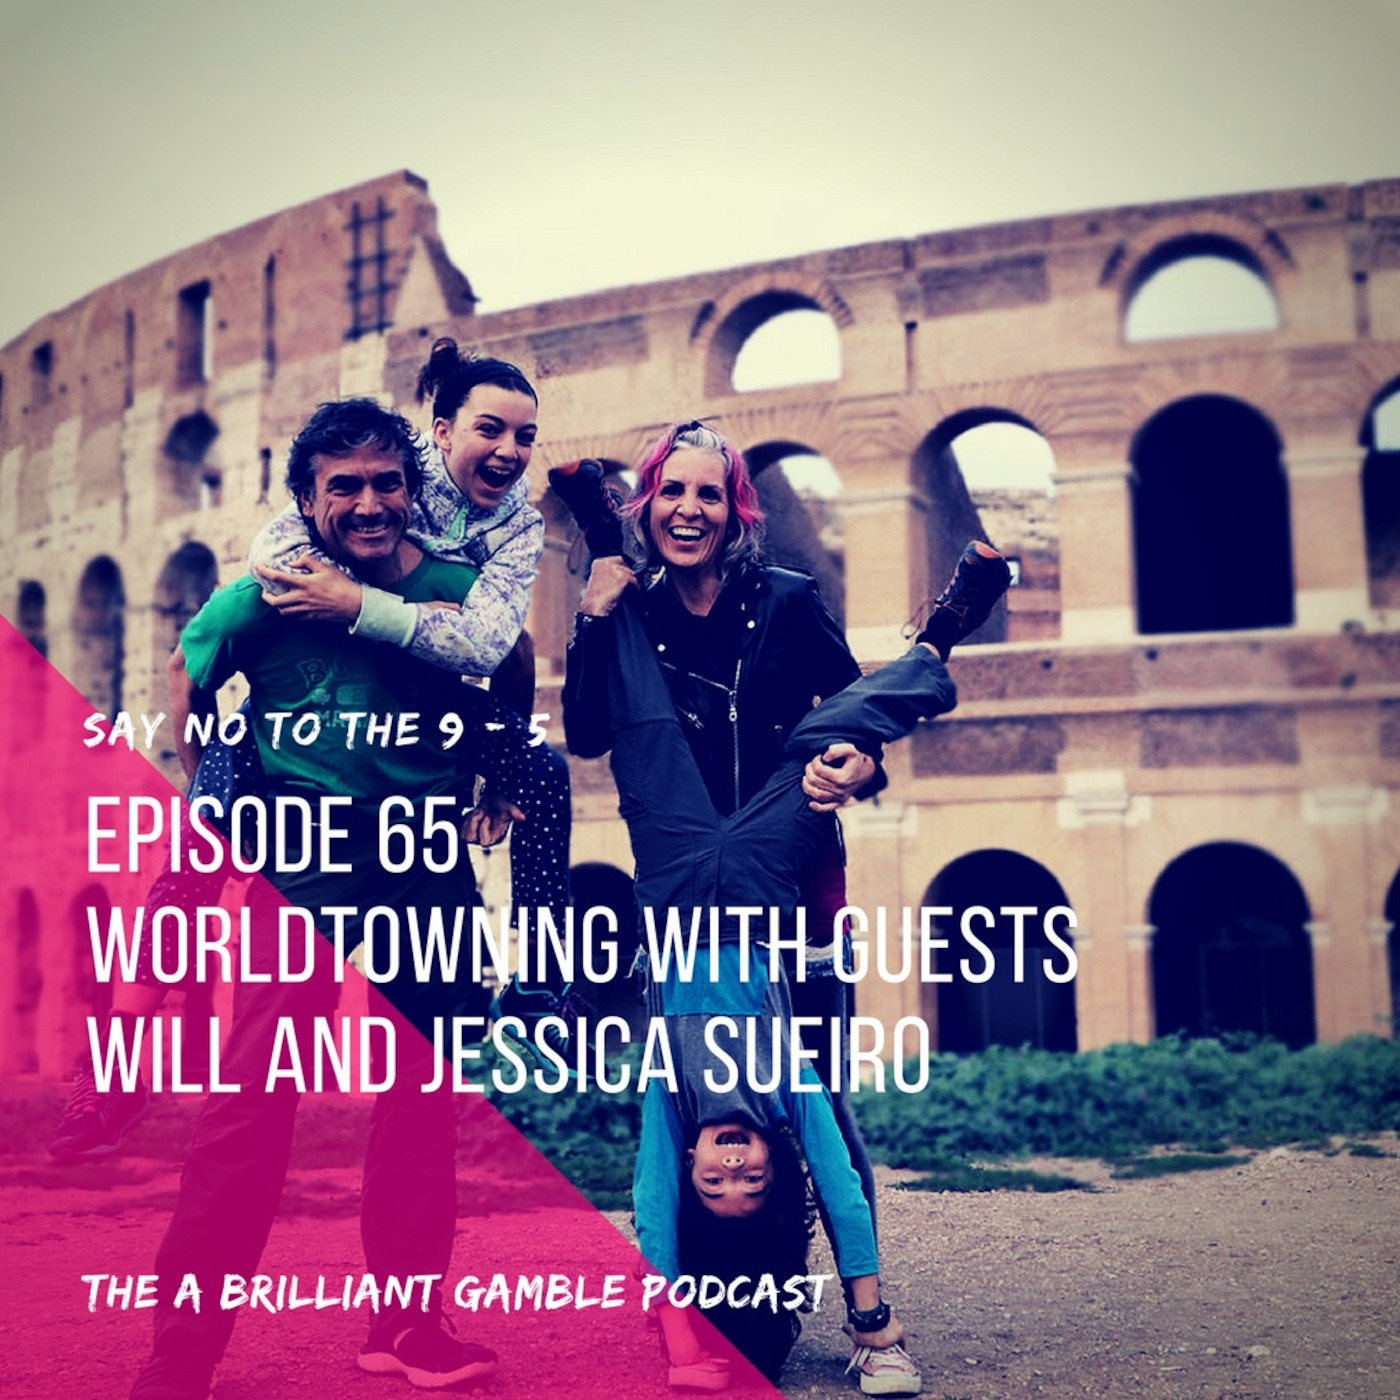 Episode 65: Worldtowning: With guests Will and Jessica Sueiro